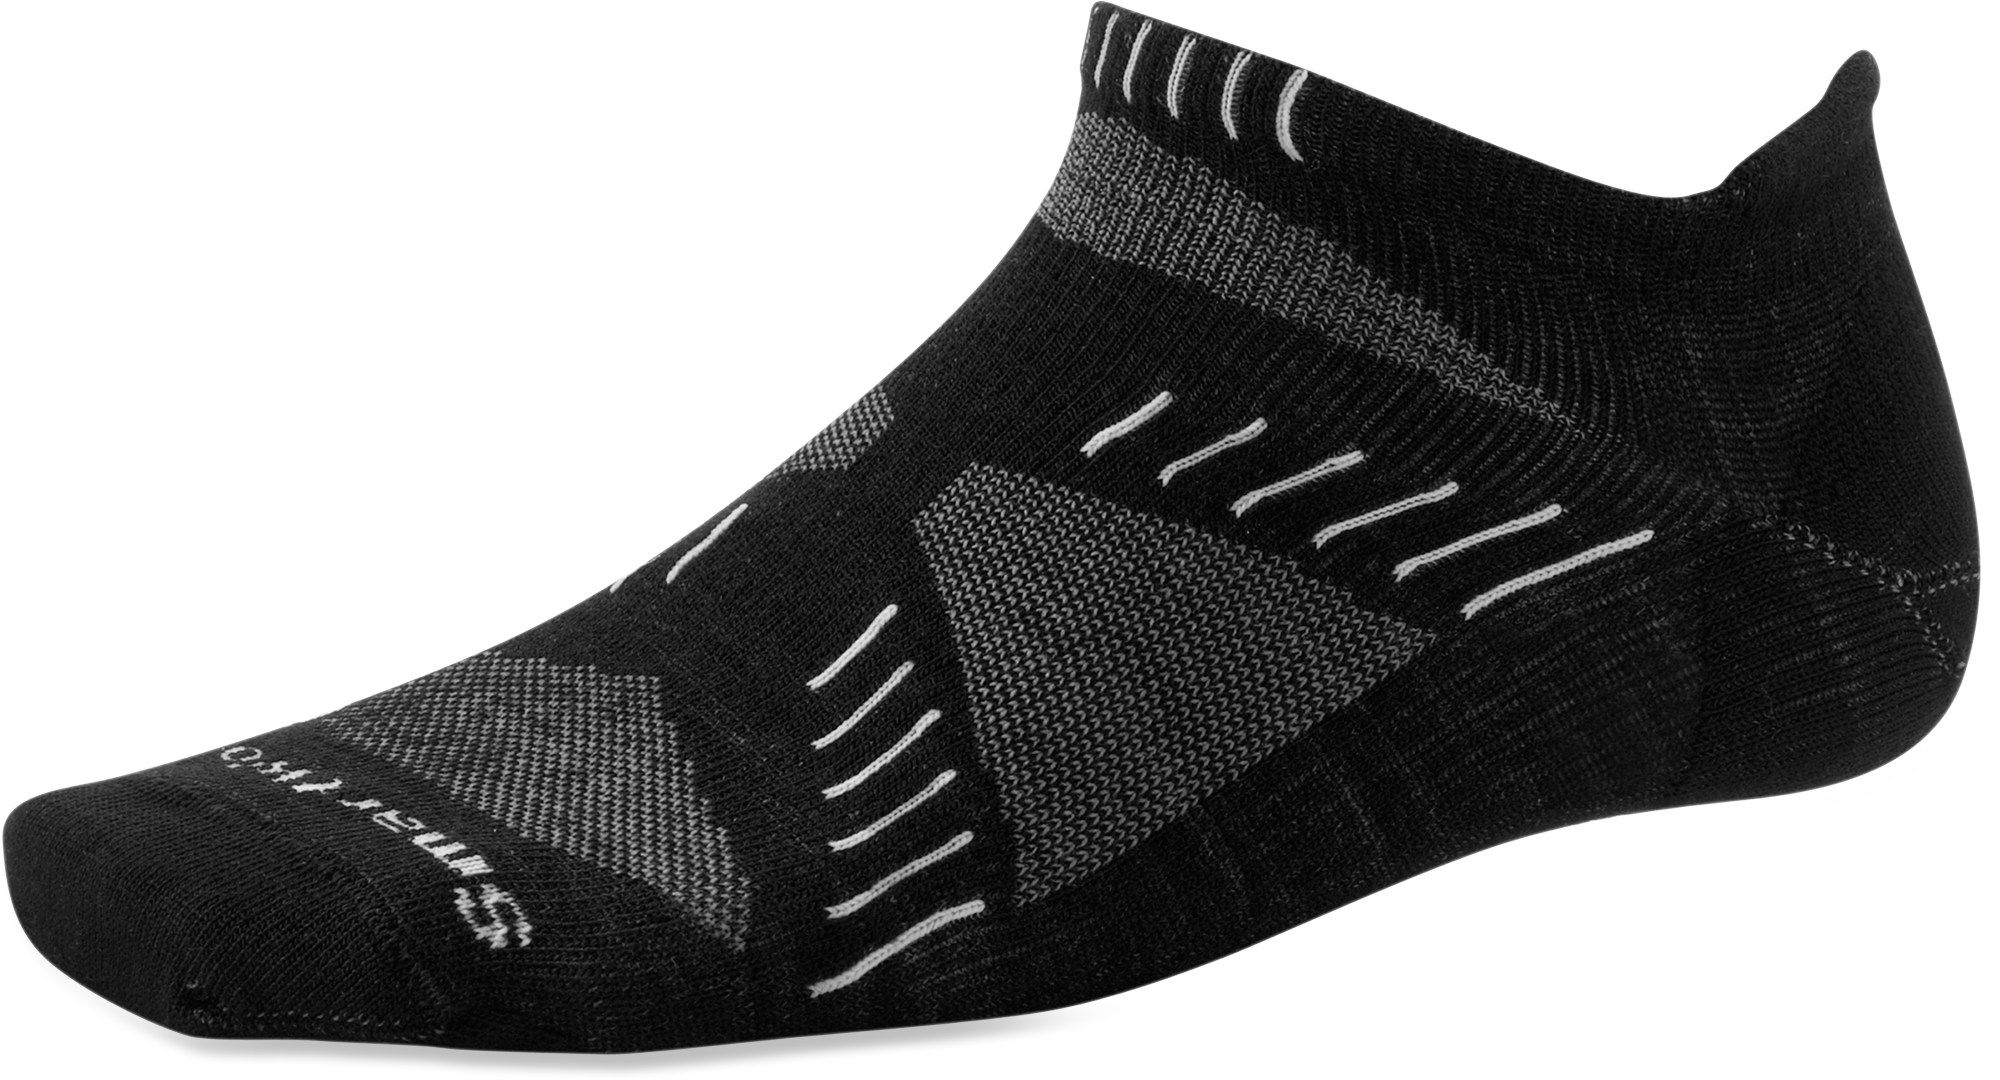 Womens More Mile Vermont Grey Wool Blend Sports Running Trainers Socks